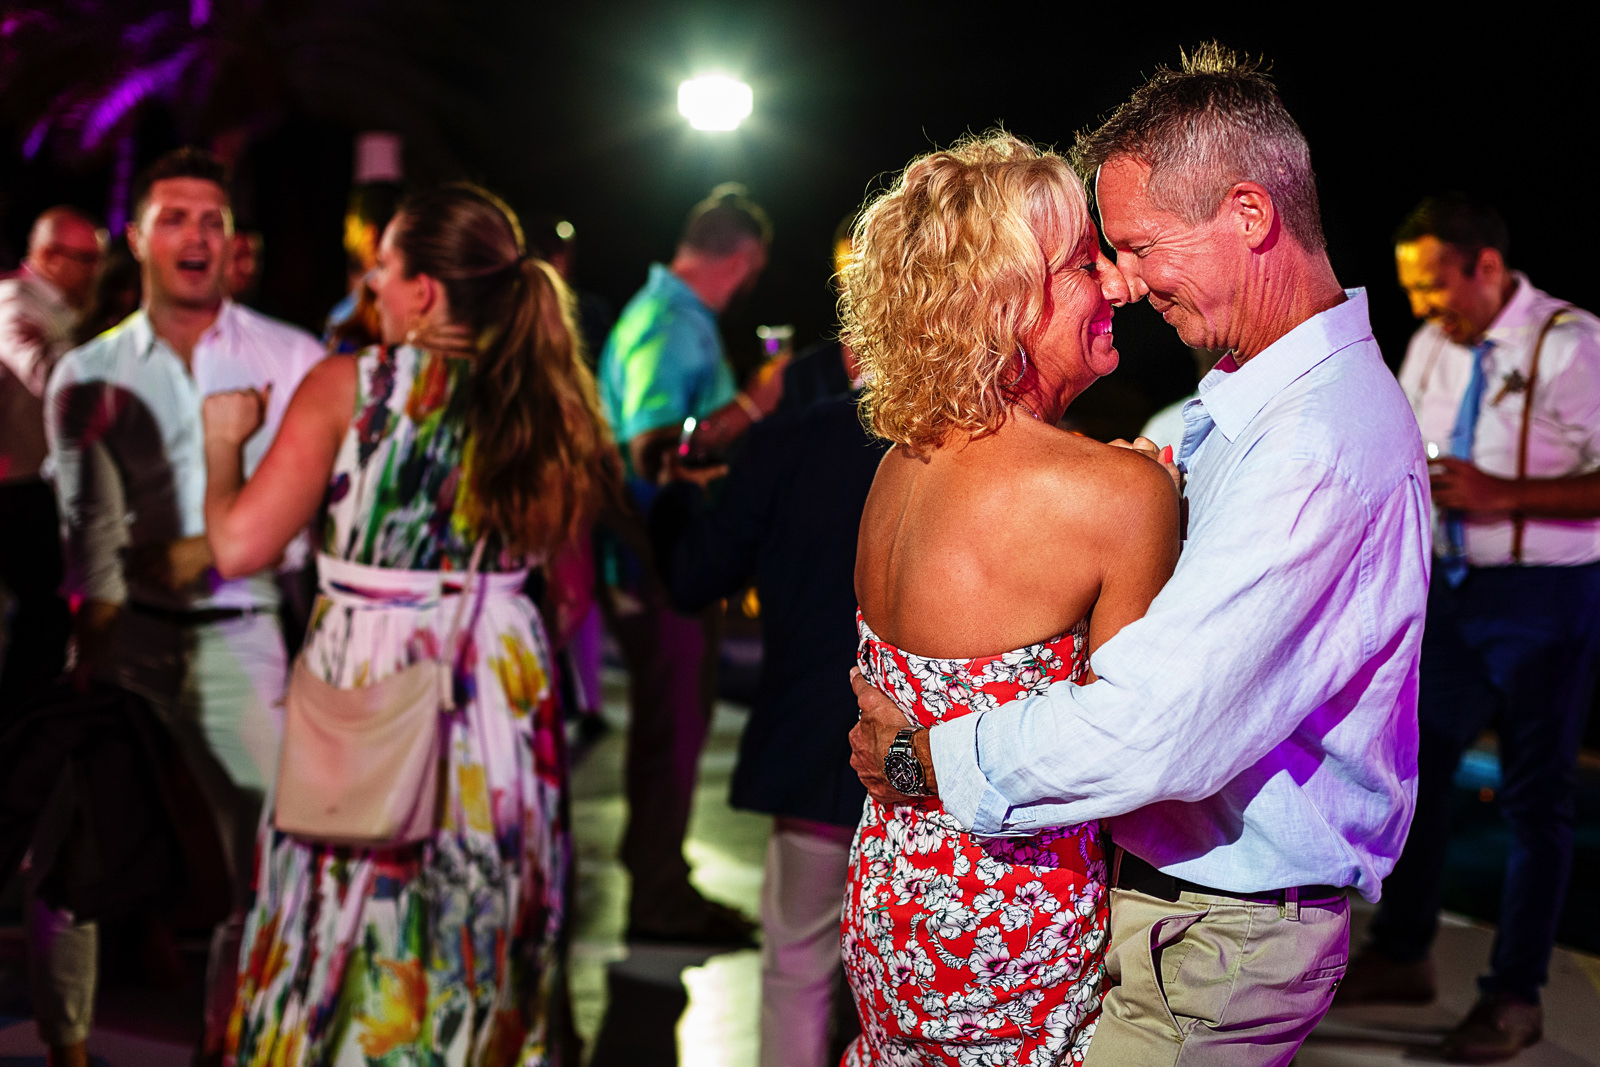 Wedding guests smooch in the middle of the dancefloor